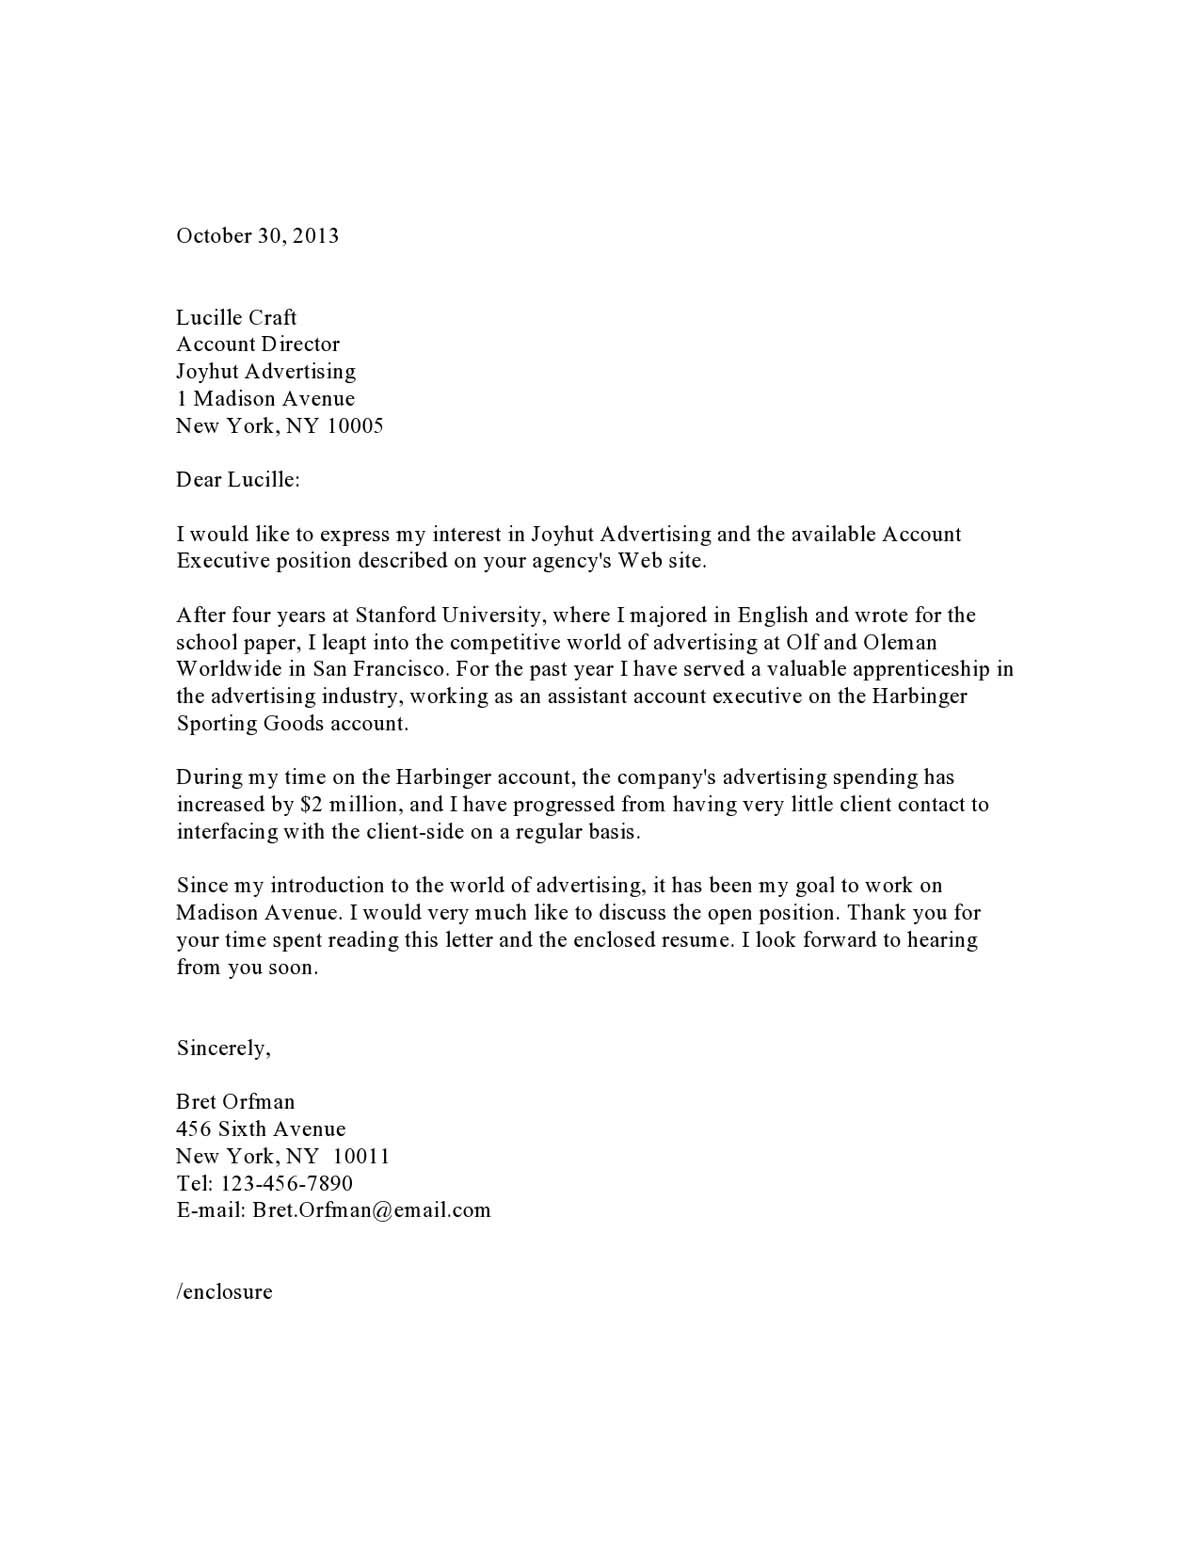 002 Marvelou Cover Letter Writing Template Picture  Format Creative Example CvFull